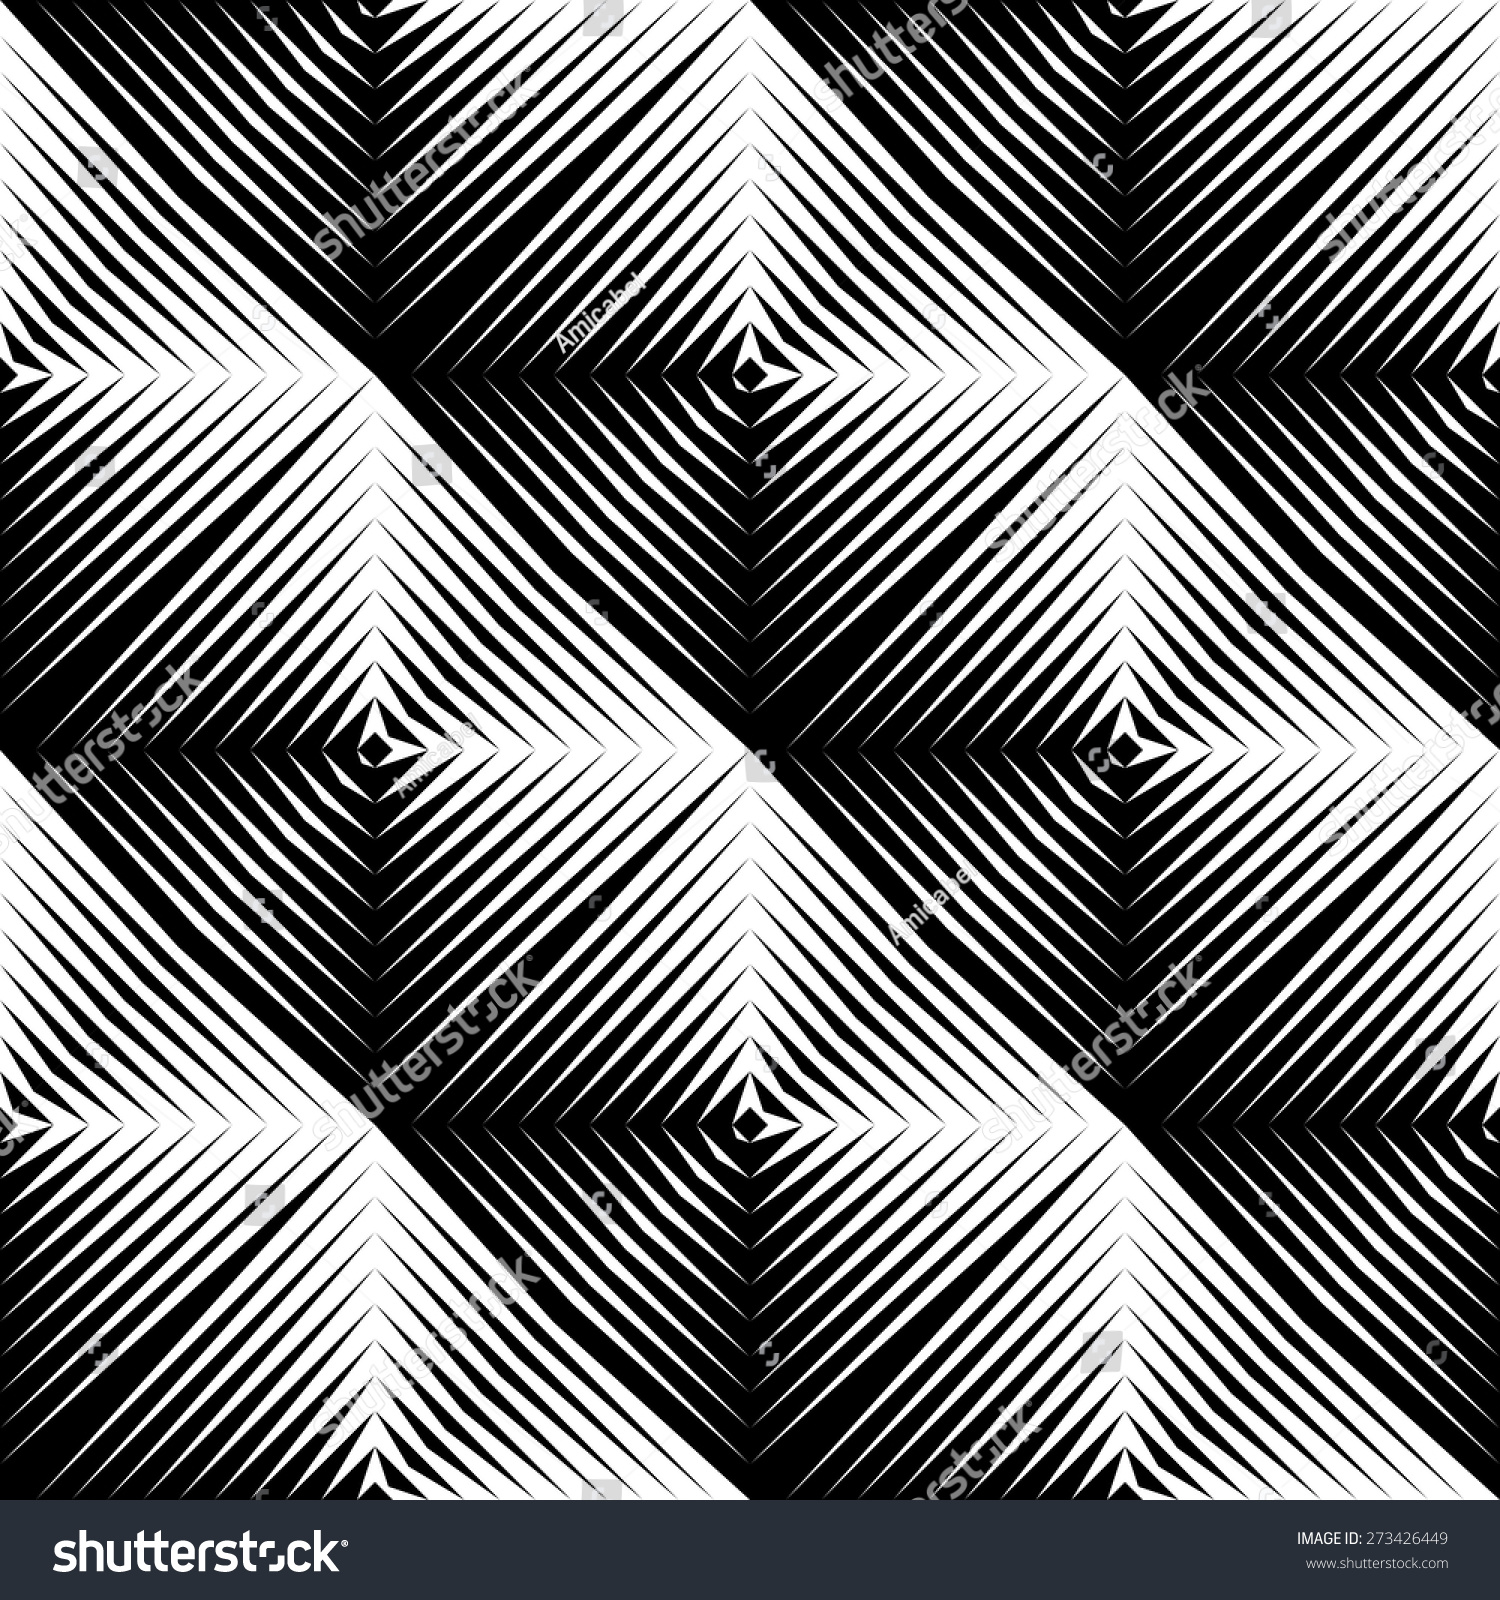 Design Seamless Square Convex Pattern Abstract Geometric